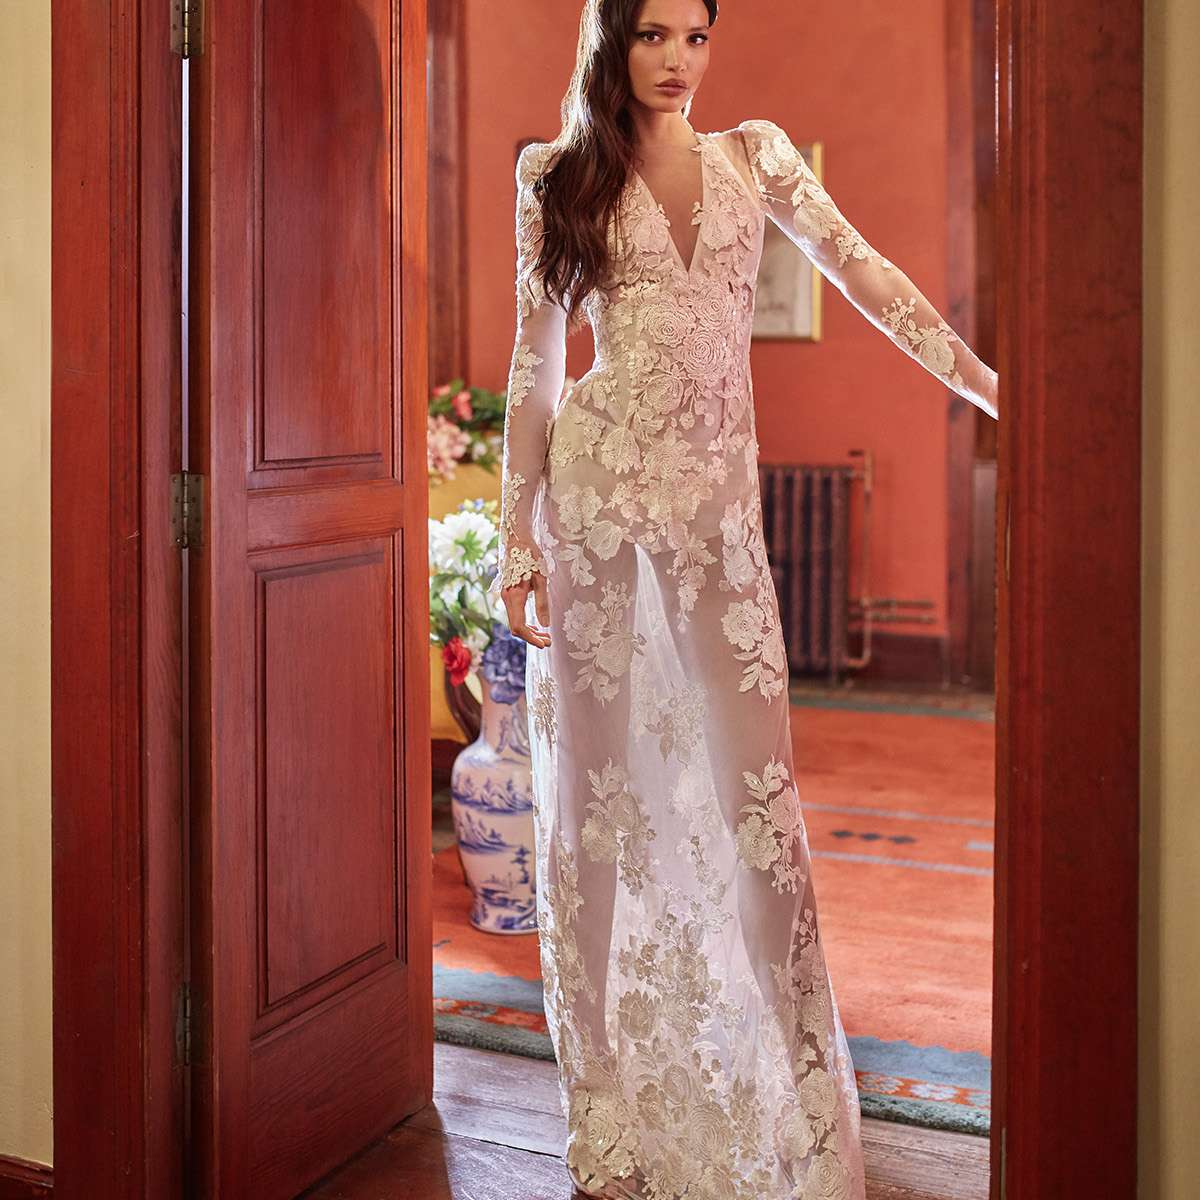 Model in allover lace sheet wedding gown with long sleeves